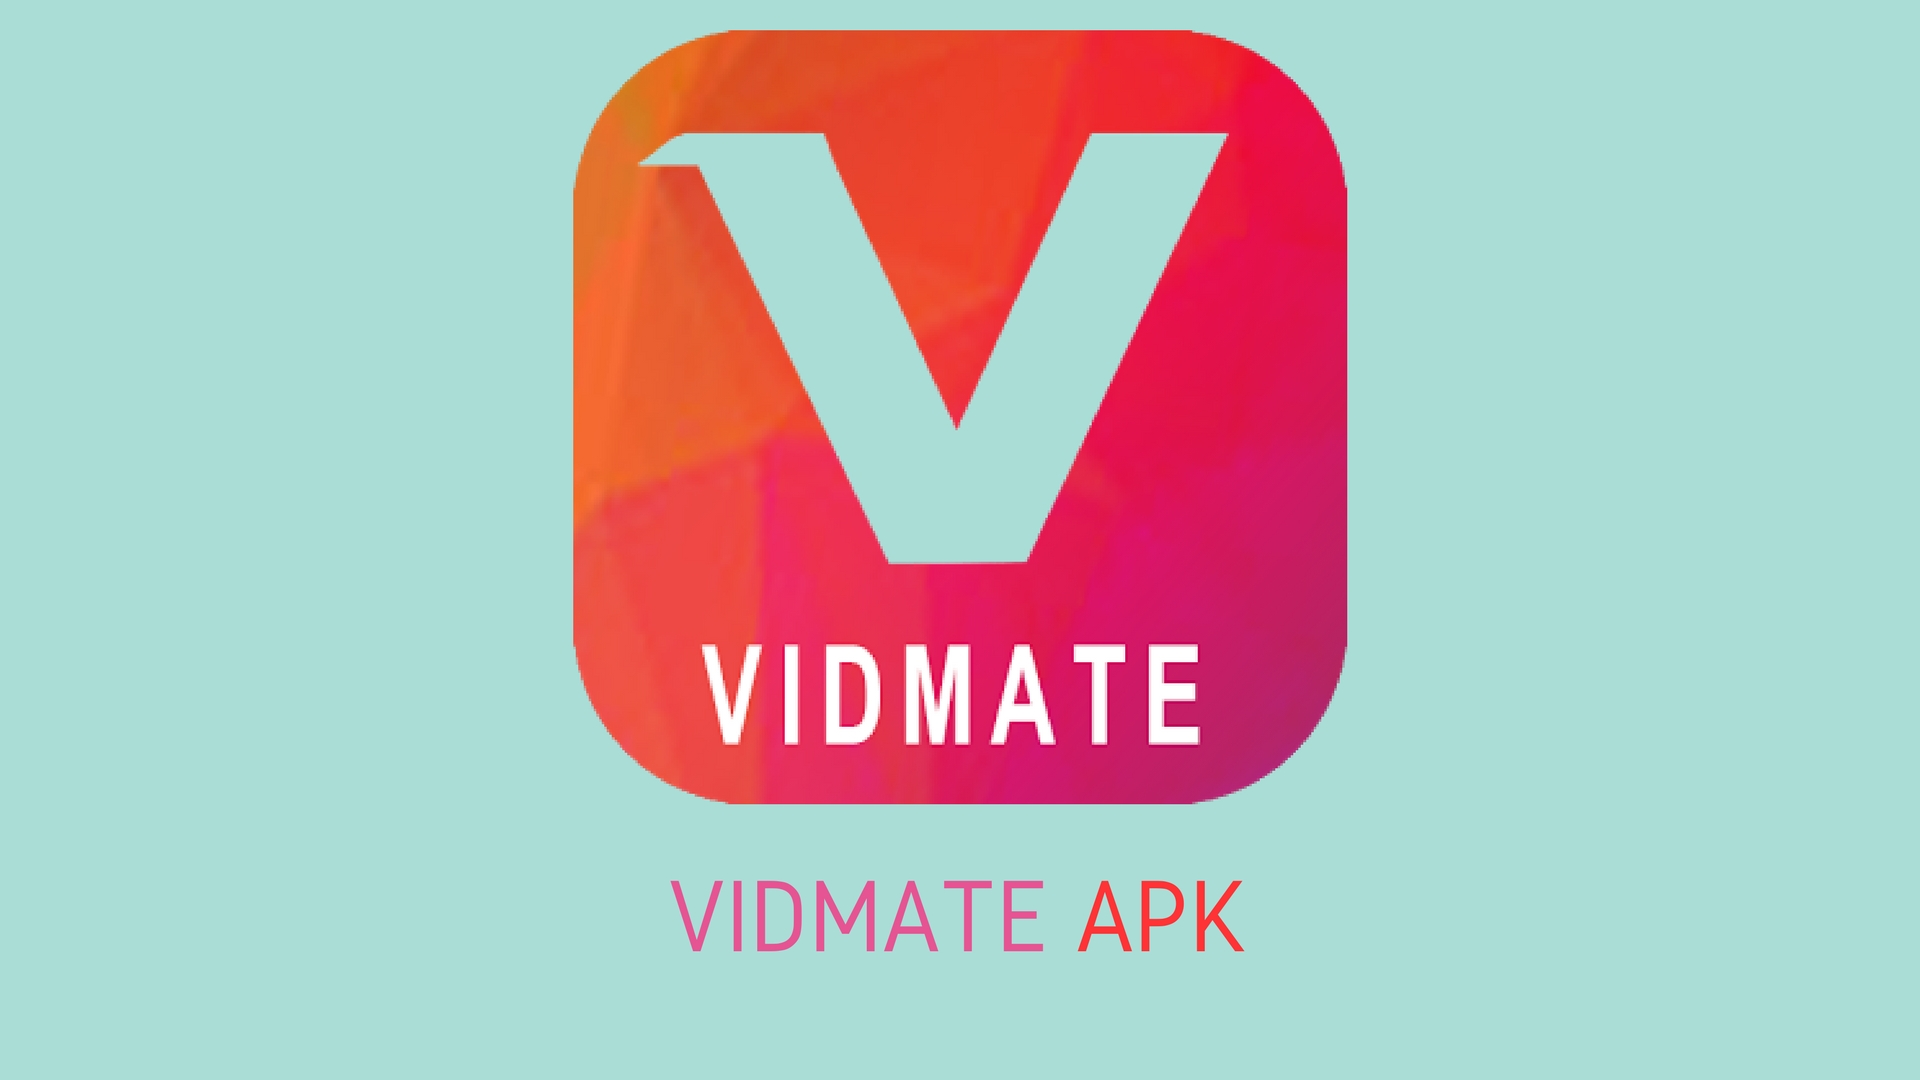 Here's How to Download and Install VidMate on Nokia